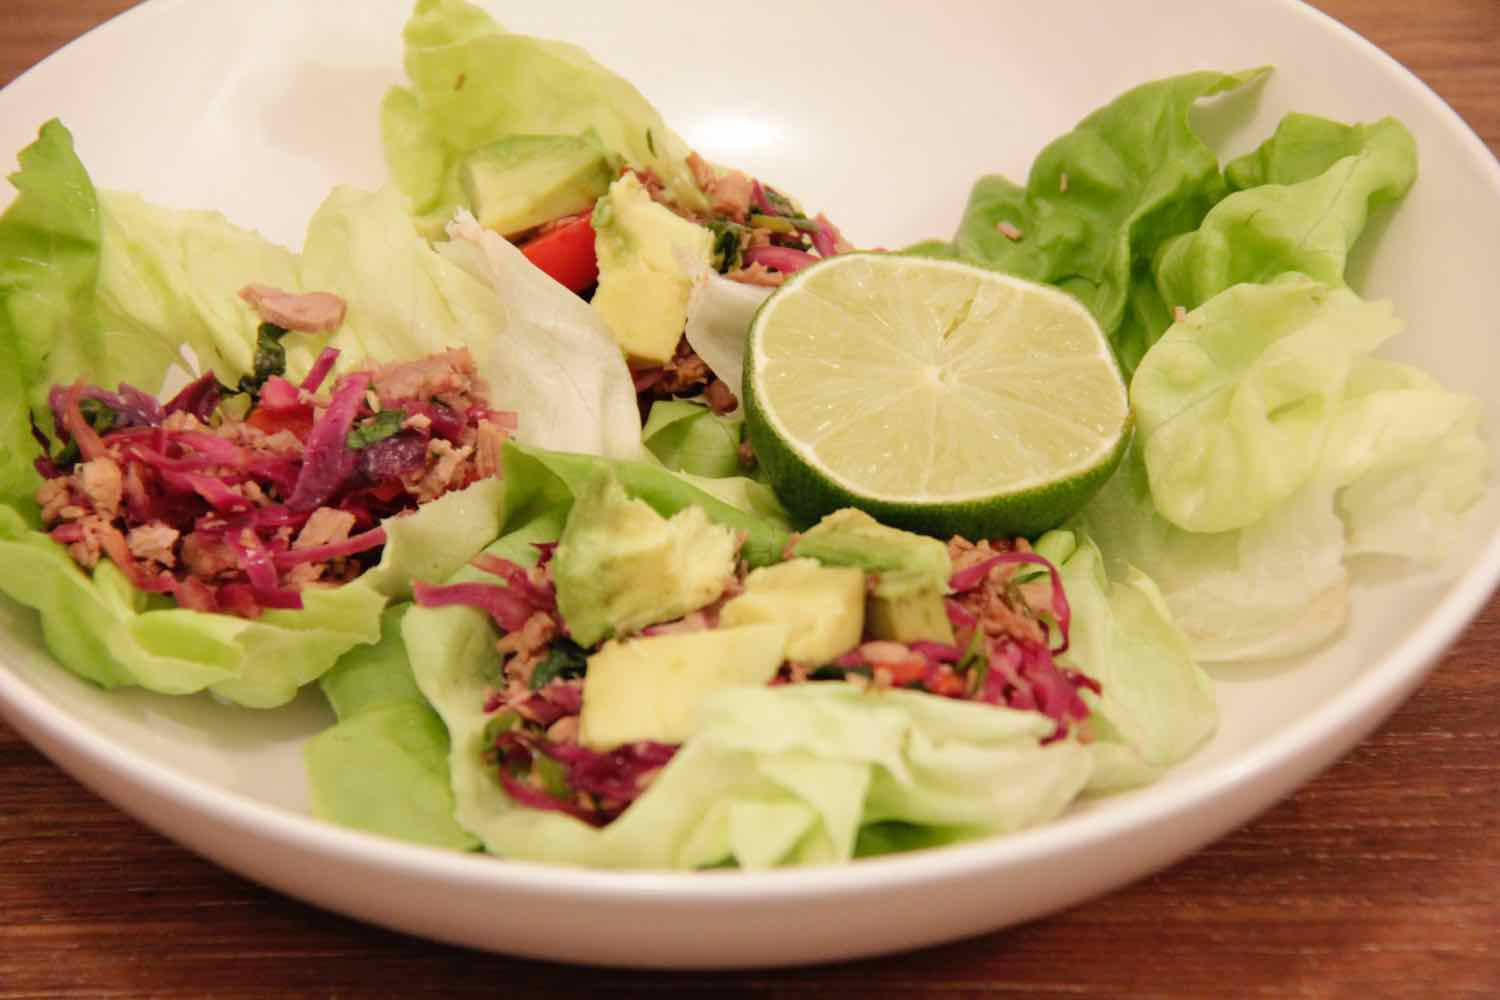 5. Pulled pork lettuce cups - a great dish for summer -